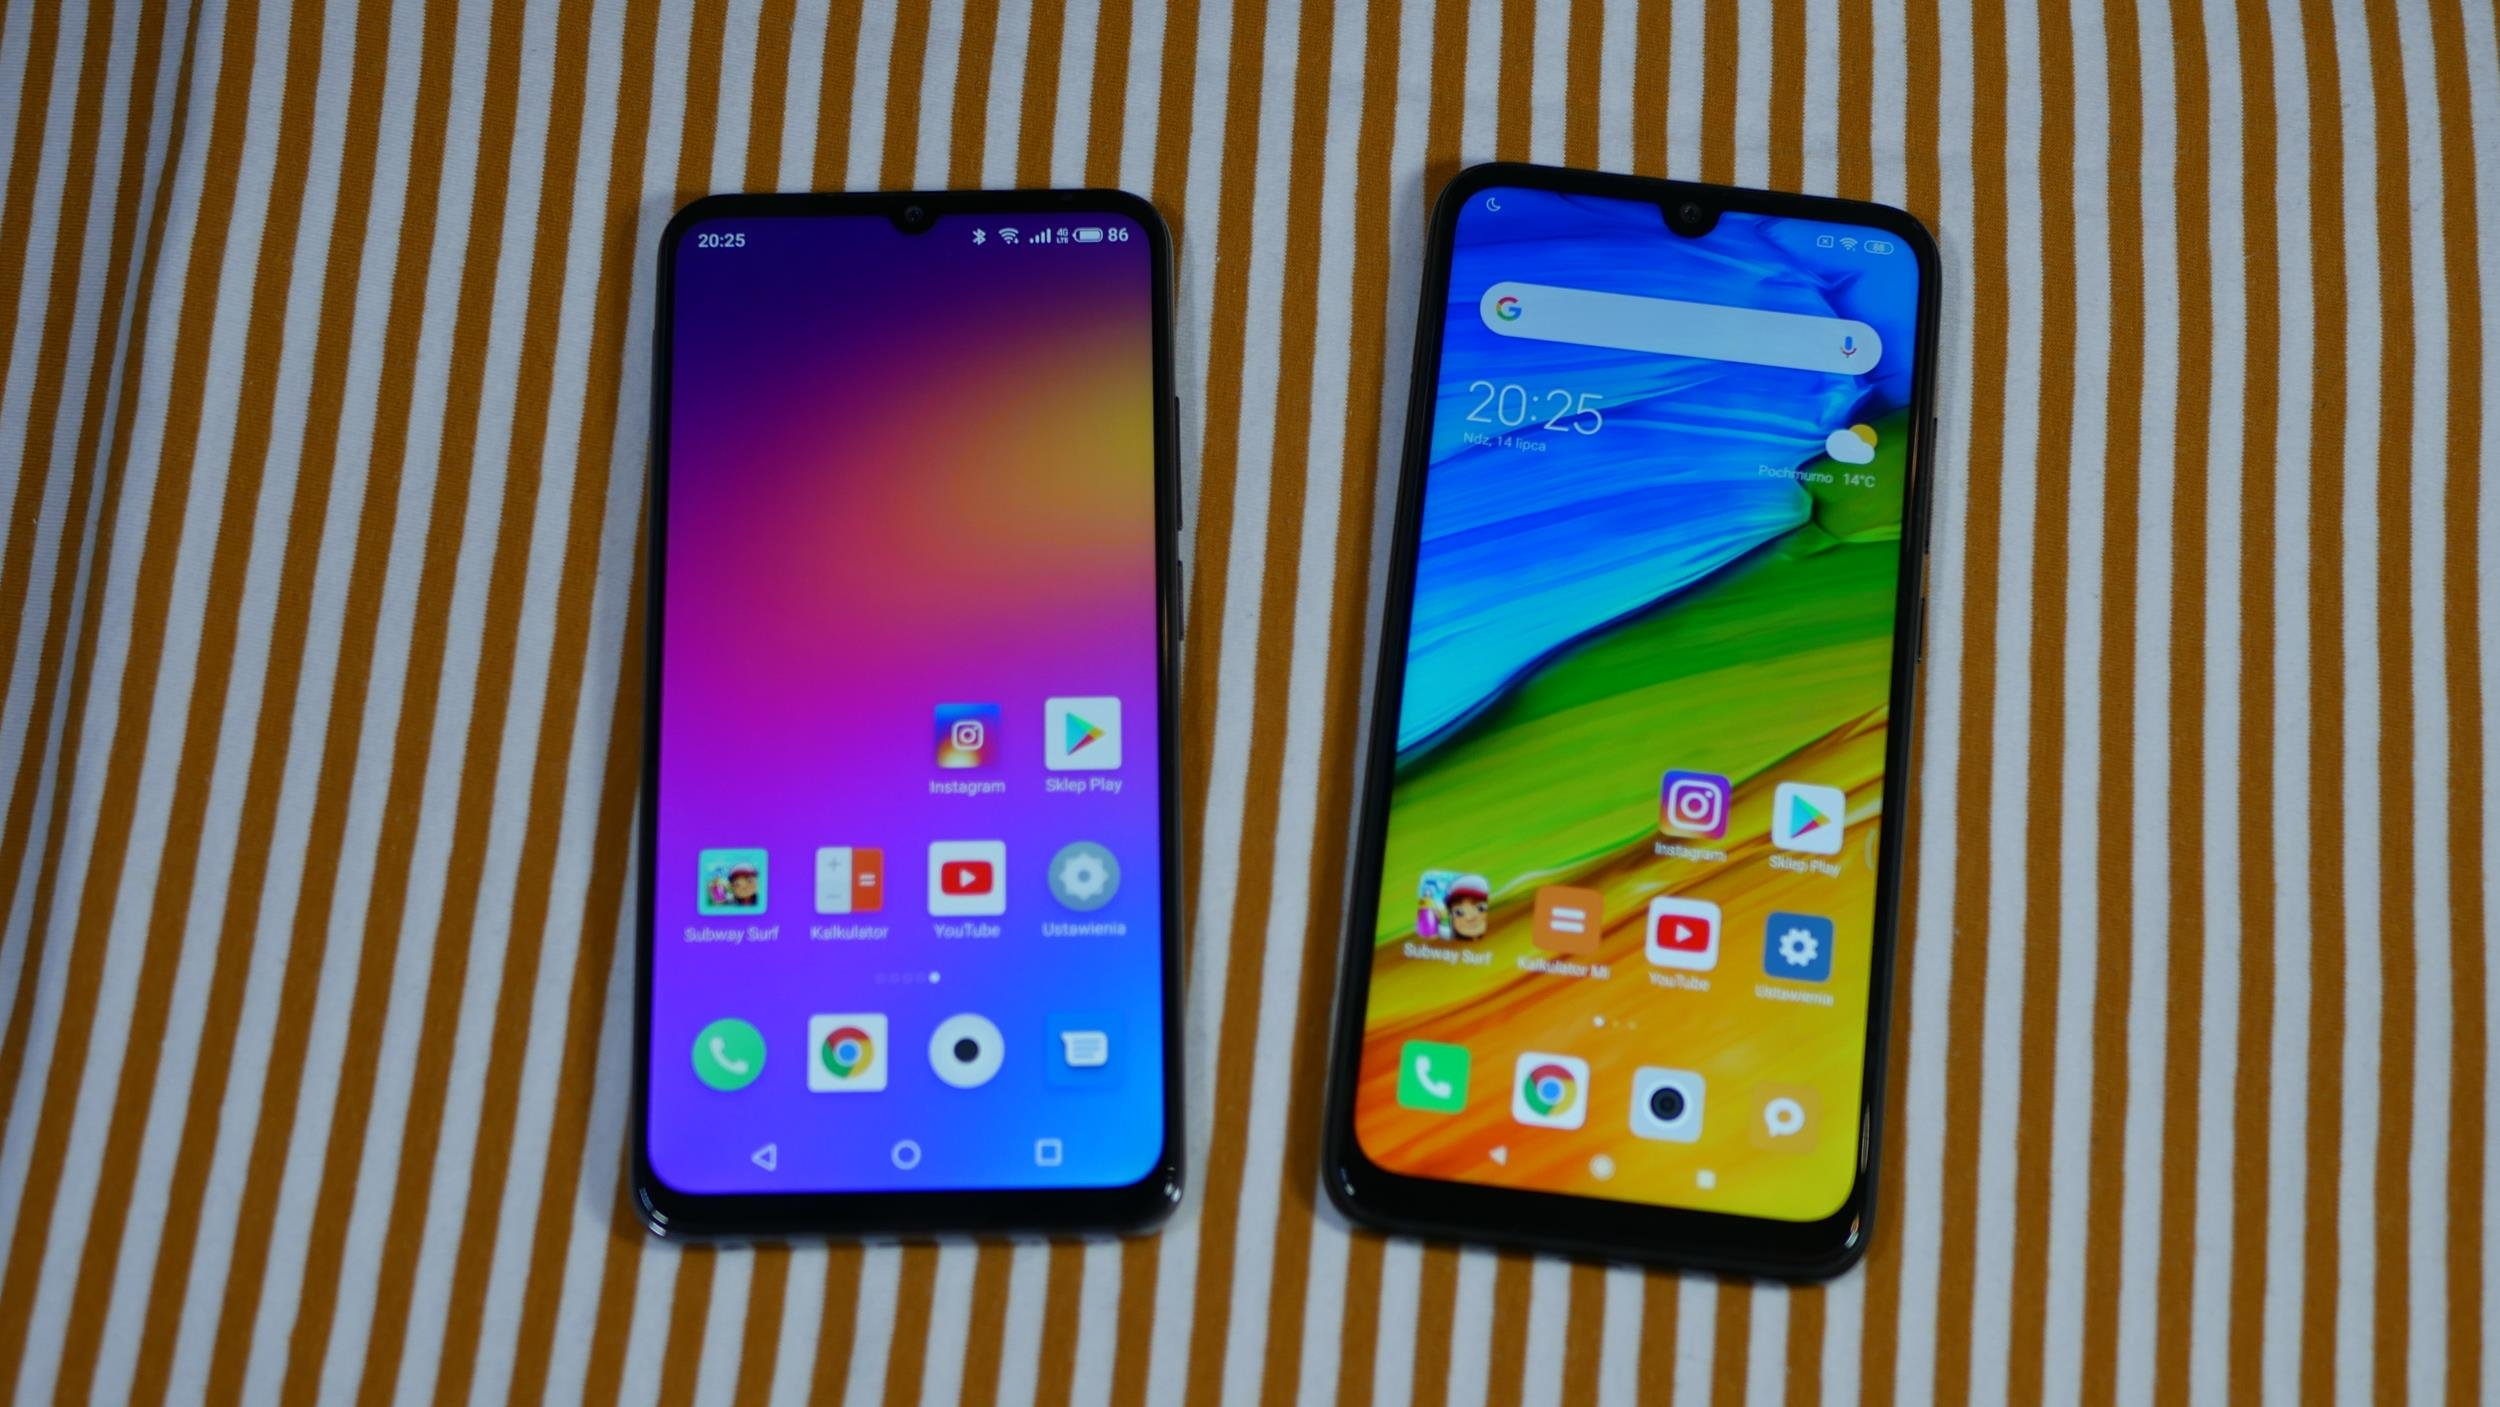 Meizu Note 9 vs Redmi Note 7